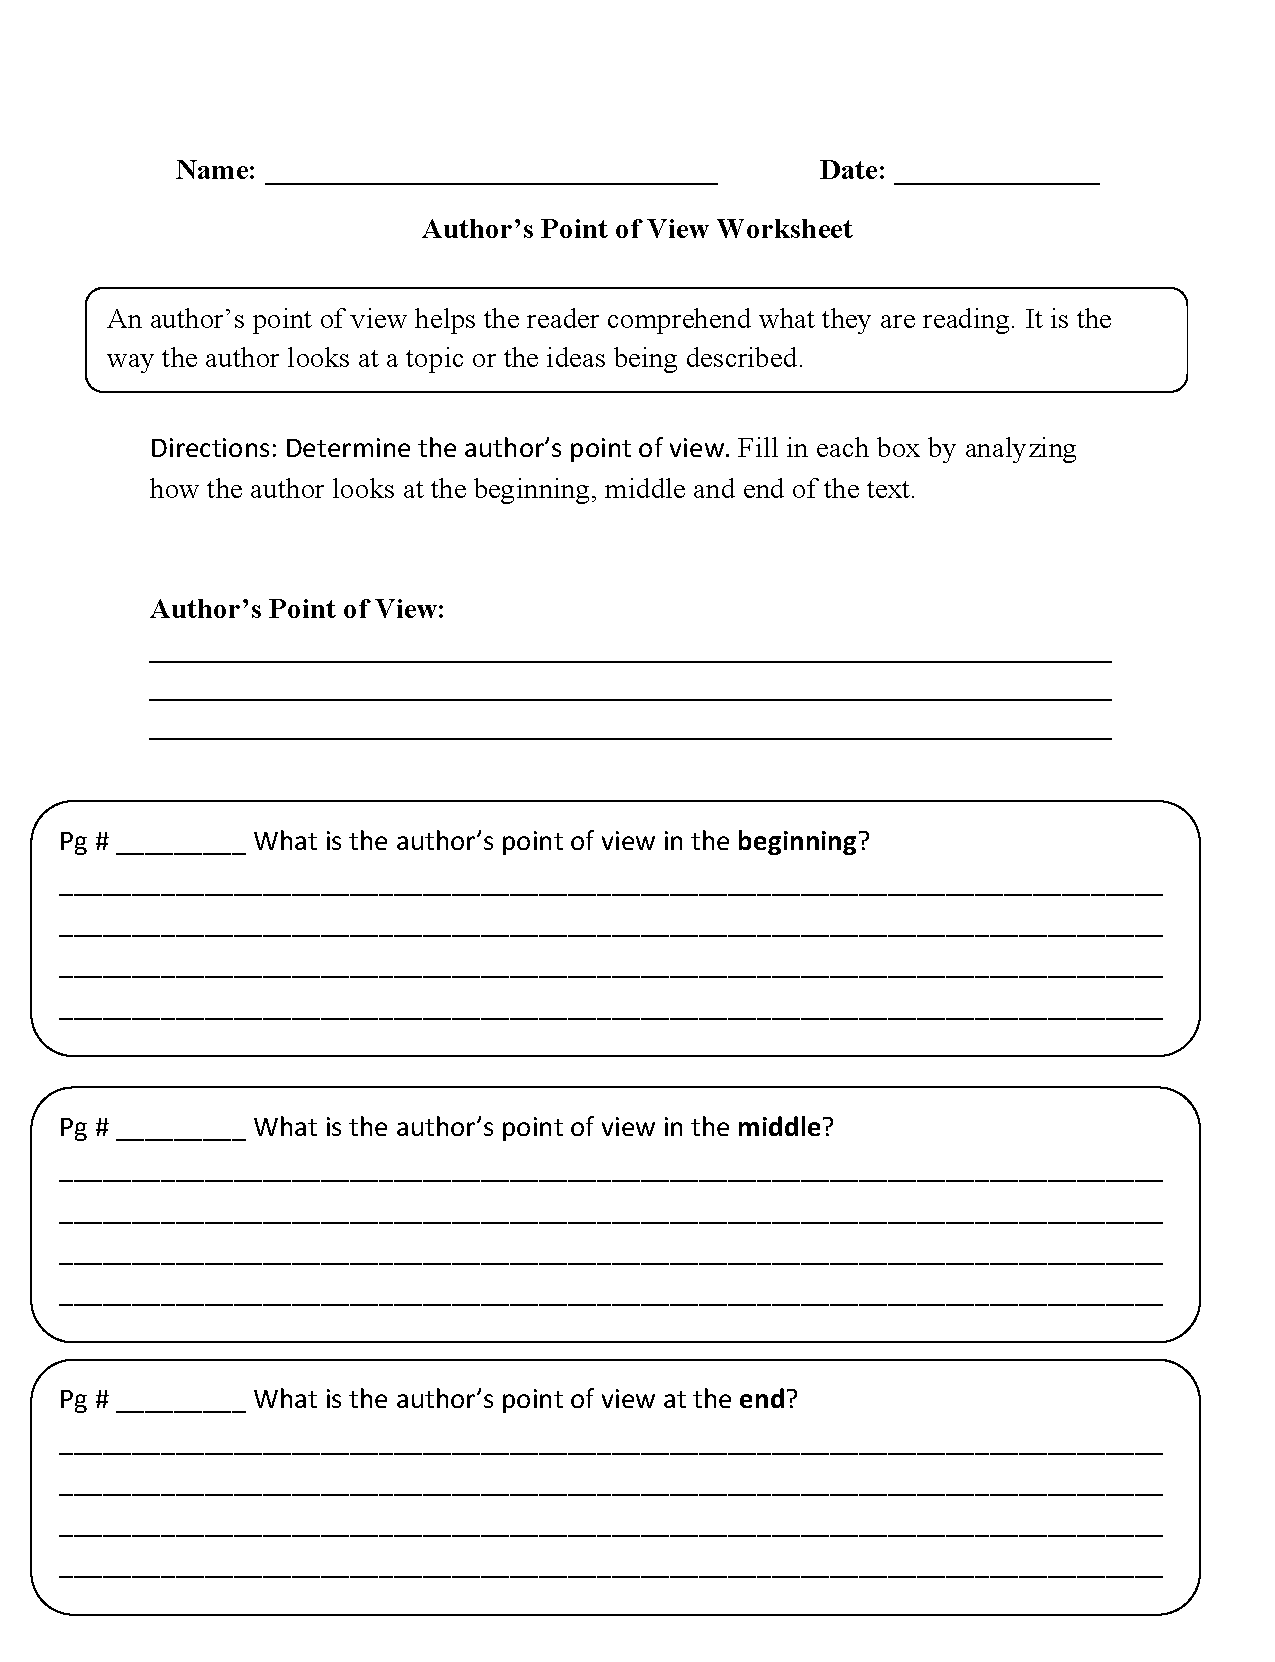 Weirdmailus  Unique Englishlinxcom  Point Of View Worksheets With Fetching Point Of View Worksheets With Astounding Annabel Lee Worksheet Also Lowercase Letter Worksheets In Addition Frog And Toad Together Worksheets And Dts Travel Worksheet As Well As Bsa Merit Badges Worksheets Additionally St Grade Reading Worksheet From Englishlinxcom With Weirdmailus  Fetching Englishlinxcom  Point Of View Worksheets With Astounding Point Of View Worksheets And Unique Annabel Lee Worksheet Also Lowercase Letter Worksheets In Addition Frog And Toad Together Worksheets From Englishlinxcom